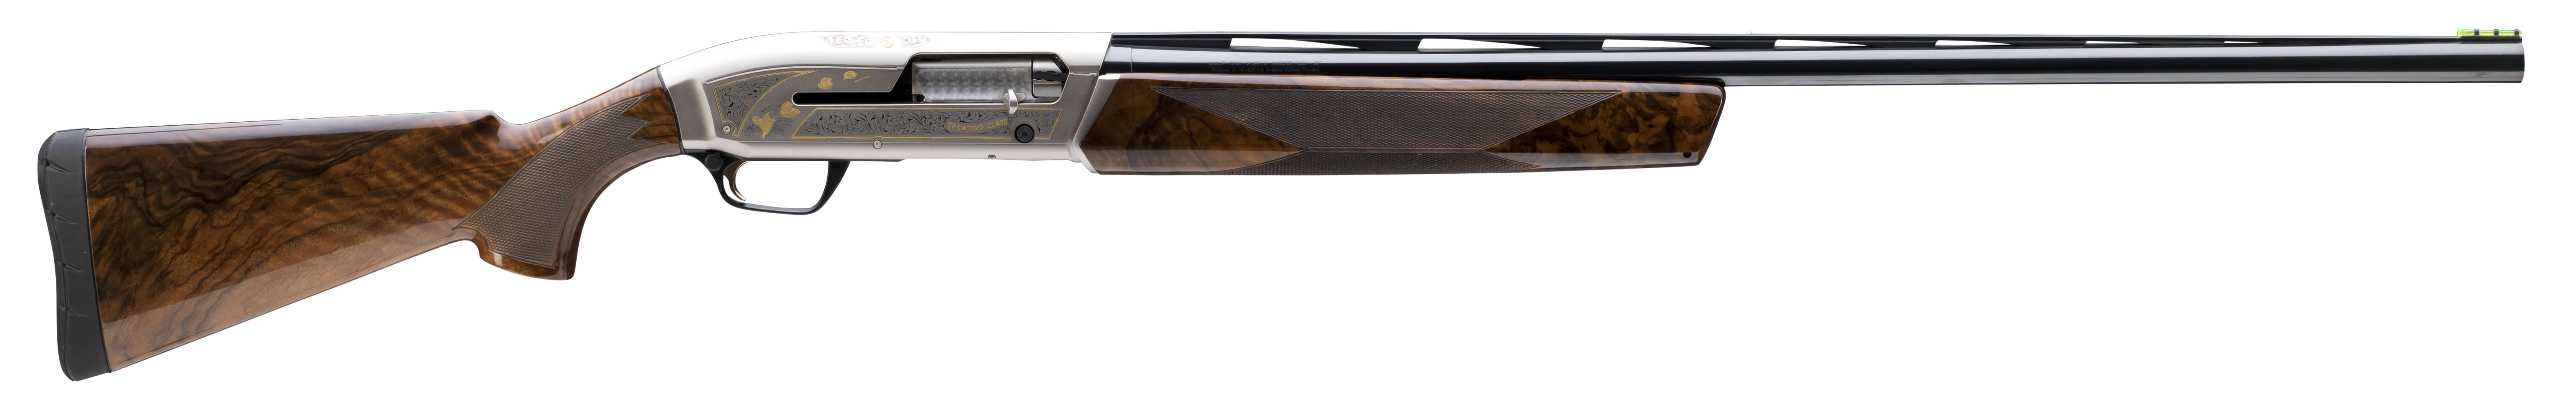 Browning Maxus Sporting Golden Clays Semi-Auto Shotgun 3'' 12 Gauge 30'' Nickeled Aluminum Alloy/Blued Barrel - Grade II Gloss/Grade III Walnut